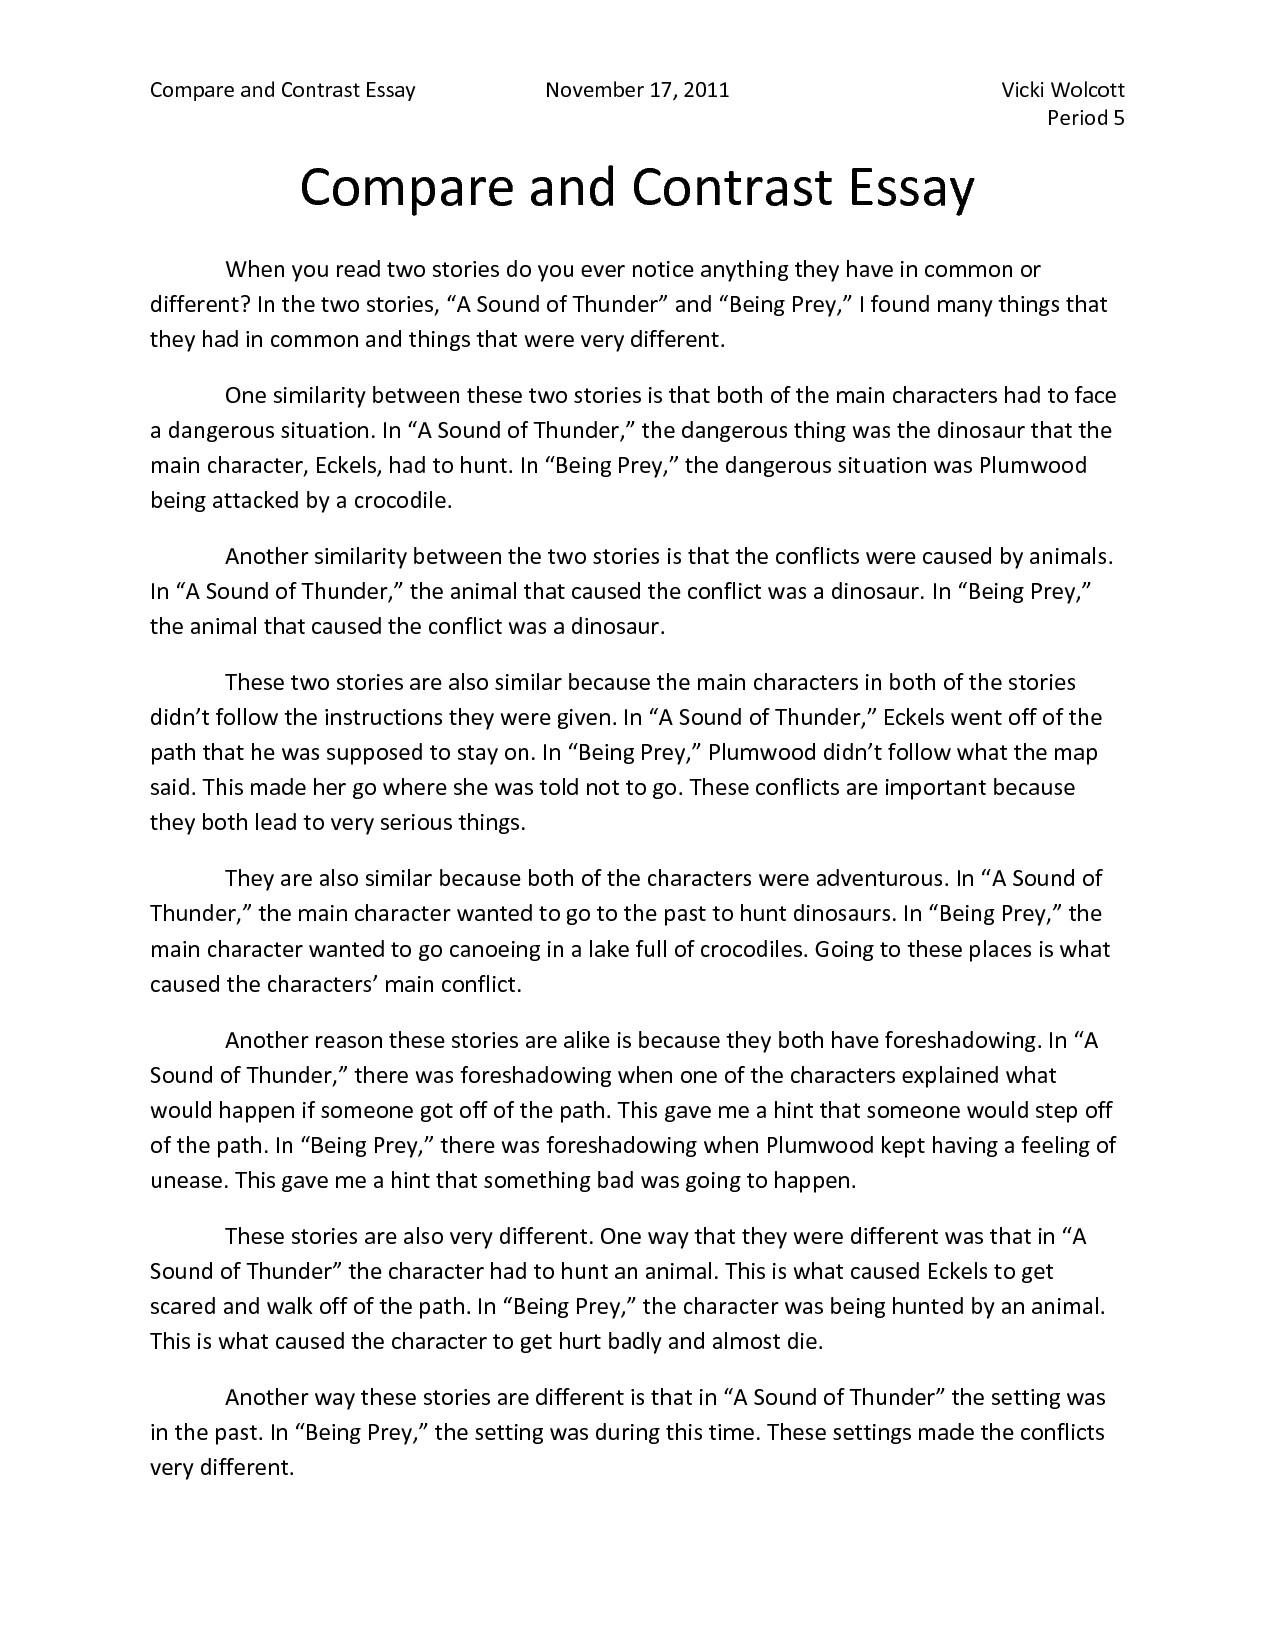 006 Comparing And Contrasting Essay Example Satire Examples Of Comparison Contrast Essays Com How To Write Outstanding A Compare Format Block Conclusion Paragraph For Full